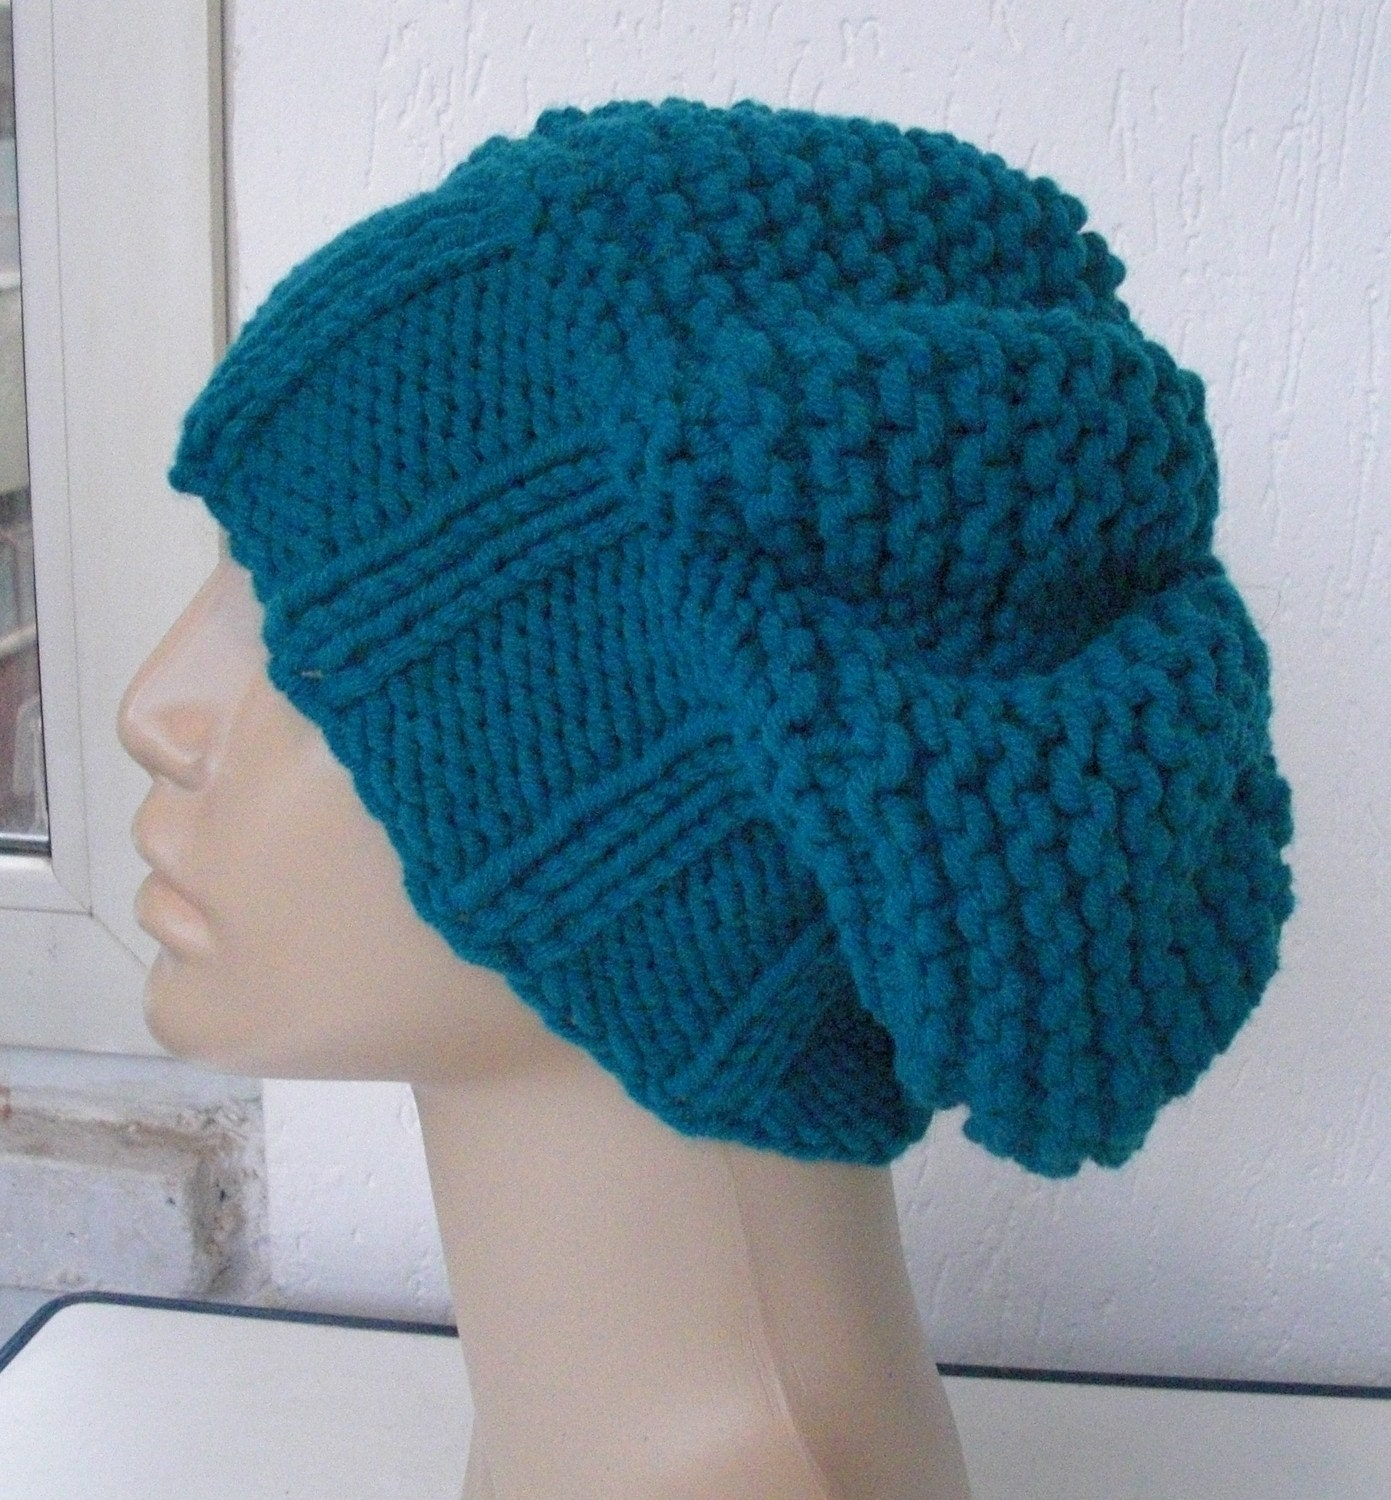 Petroleum Blue Hand Knit slouchy  Hat  Beanie by Ebruk on Etsy from etsy.com